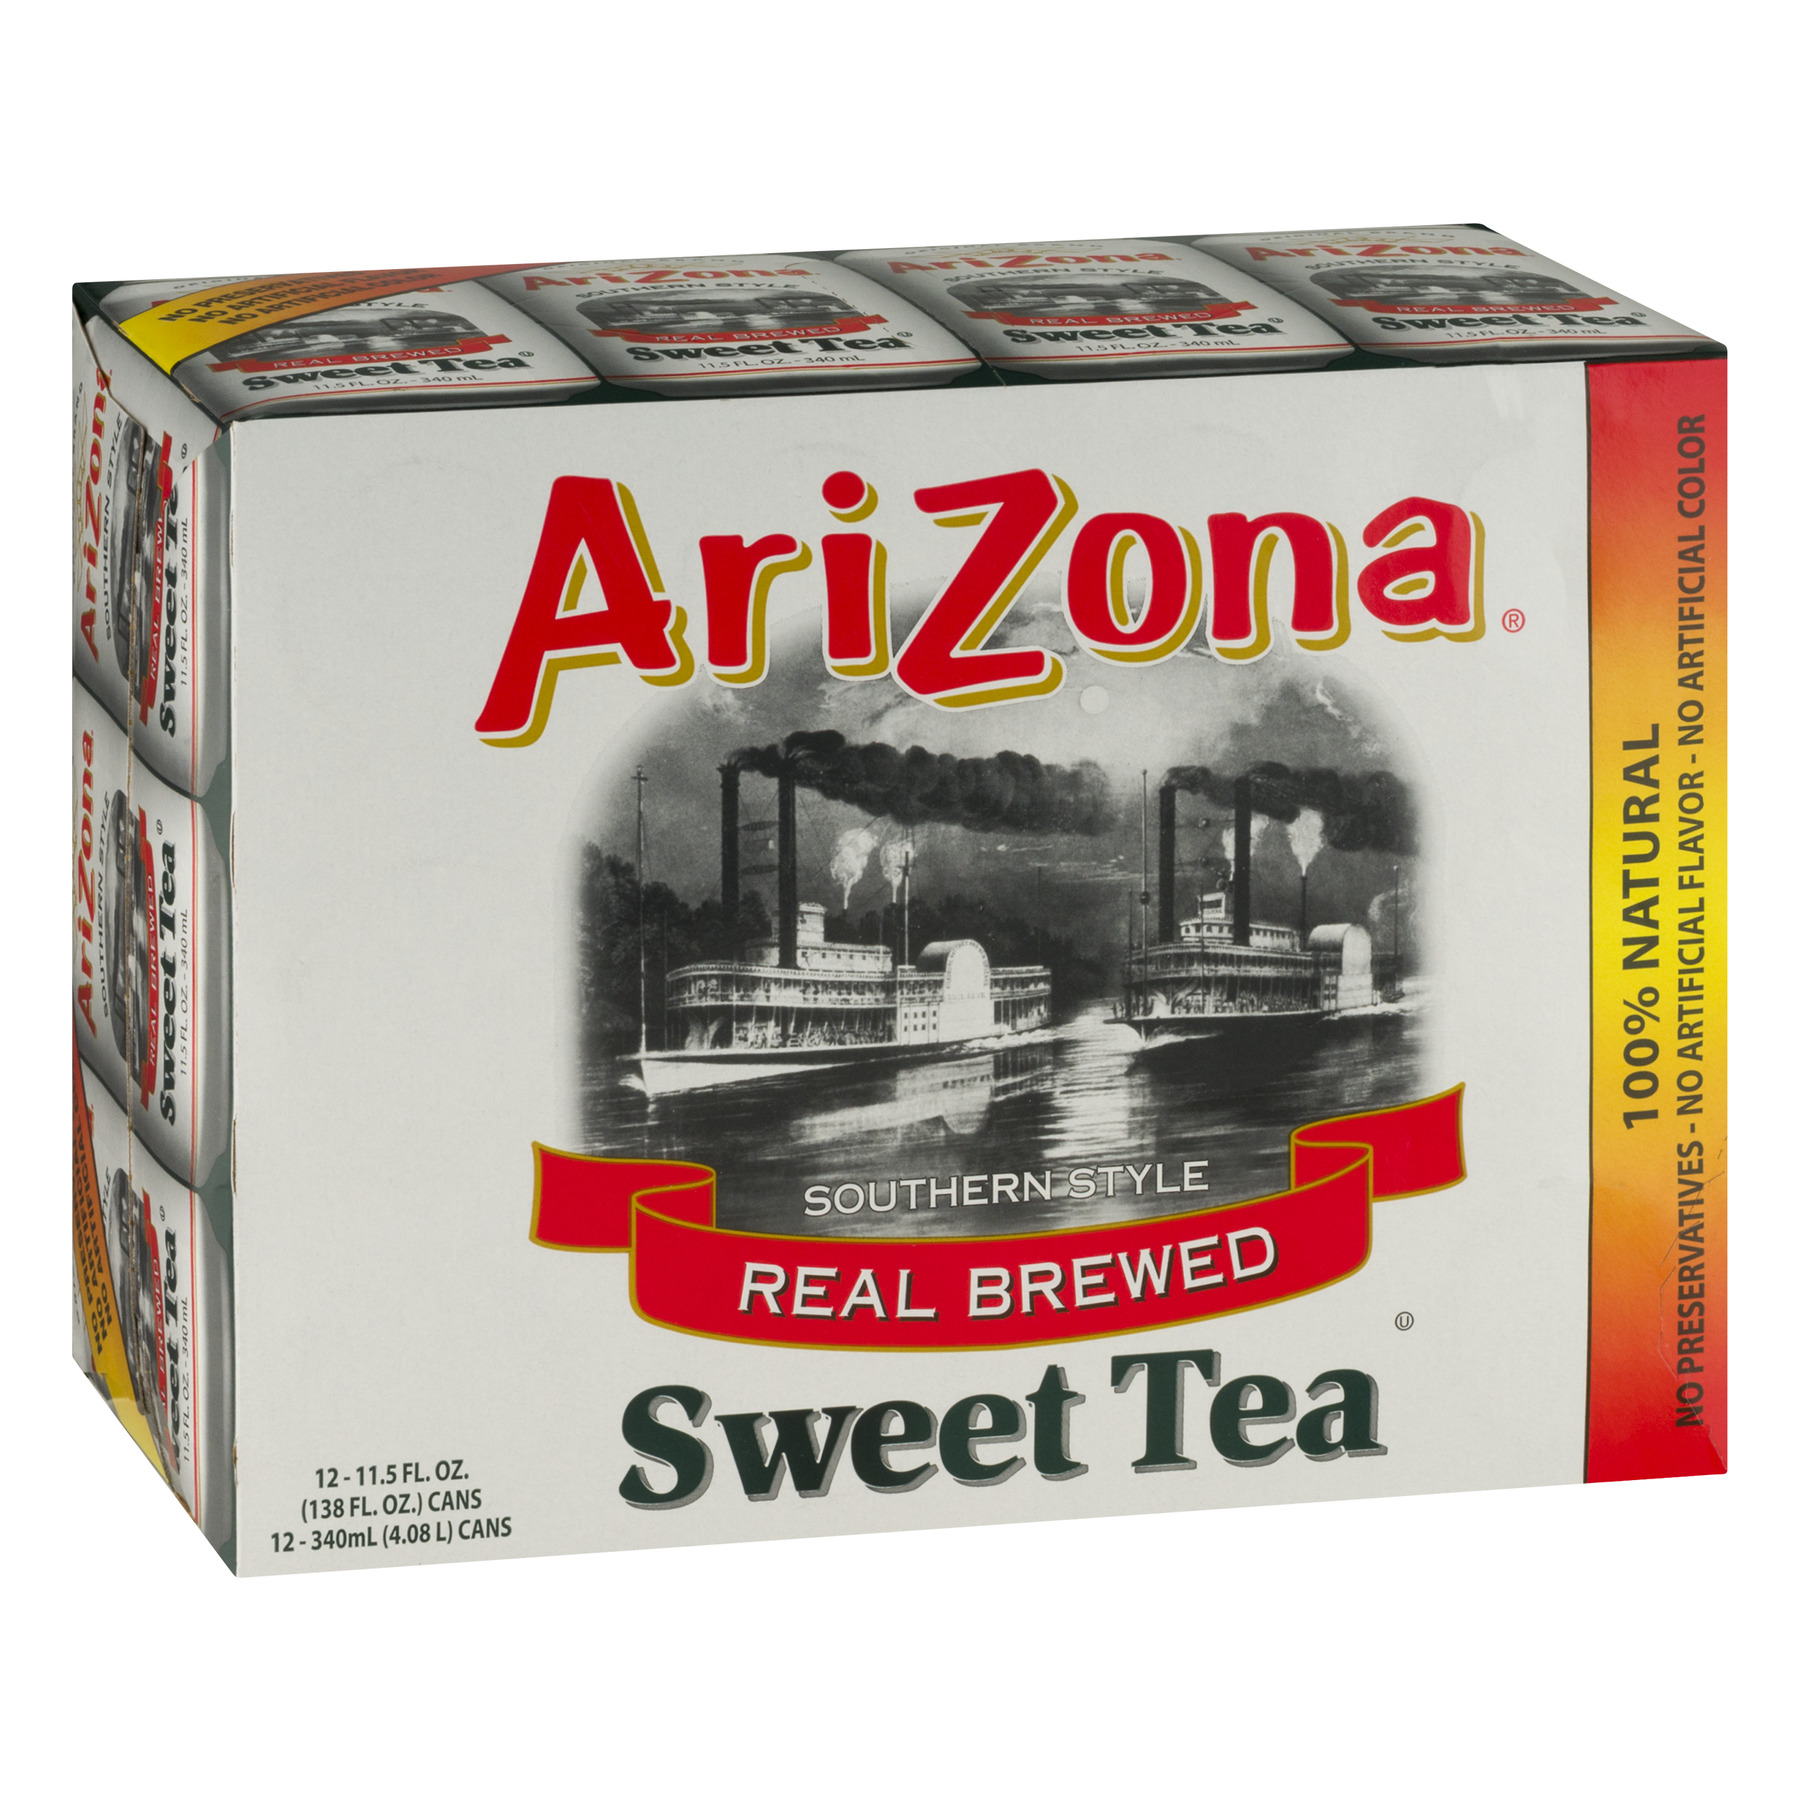 Arizona Southern Style Real Blend Sweet Tea, 11.5 Fl Oz, 12 Count